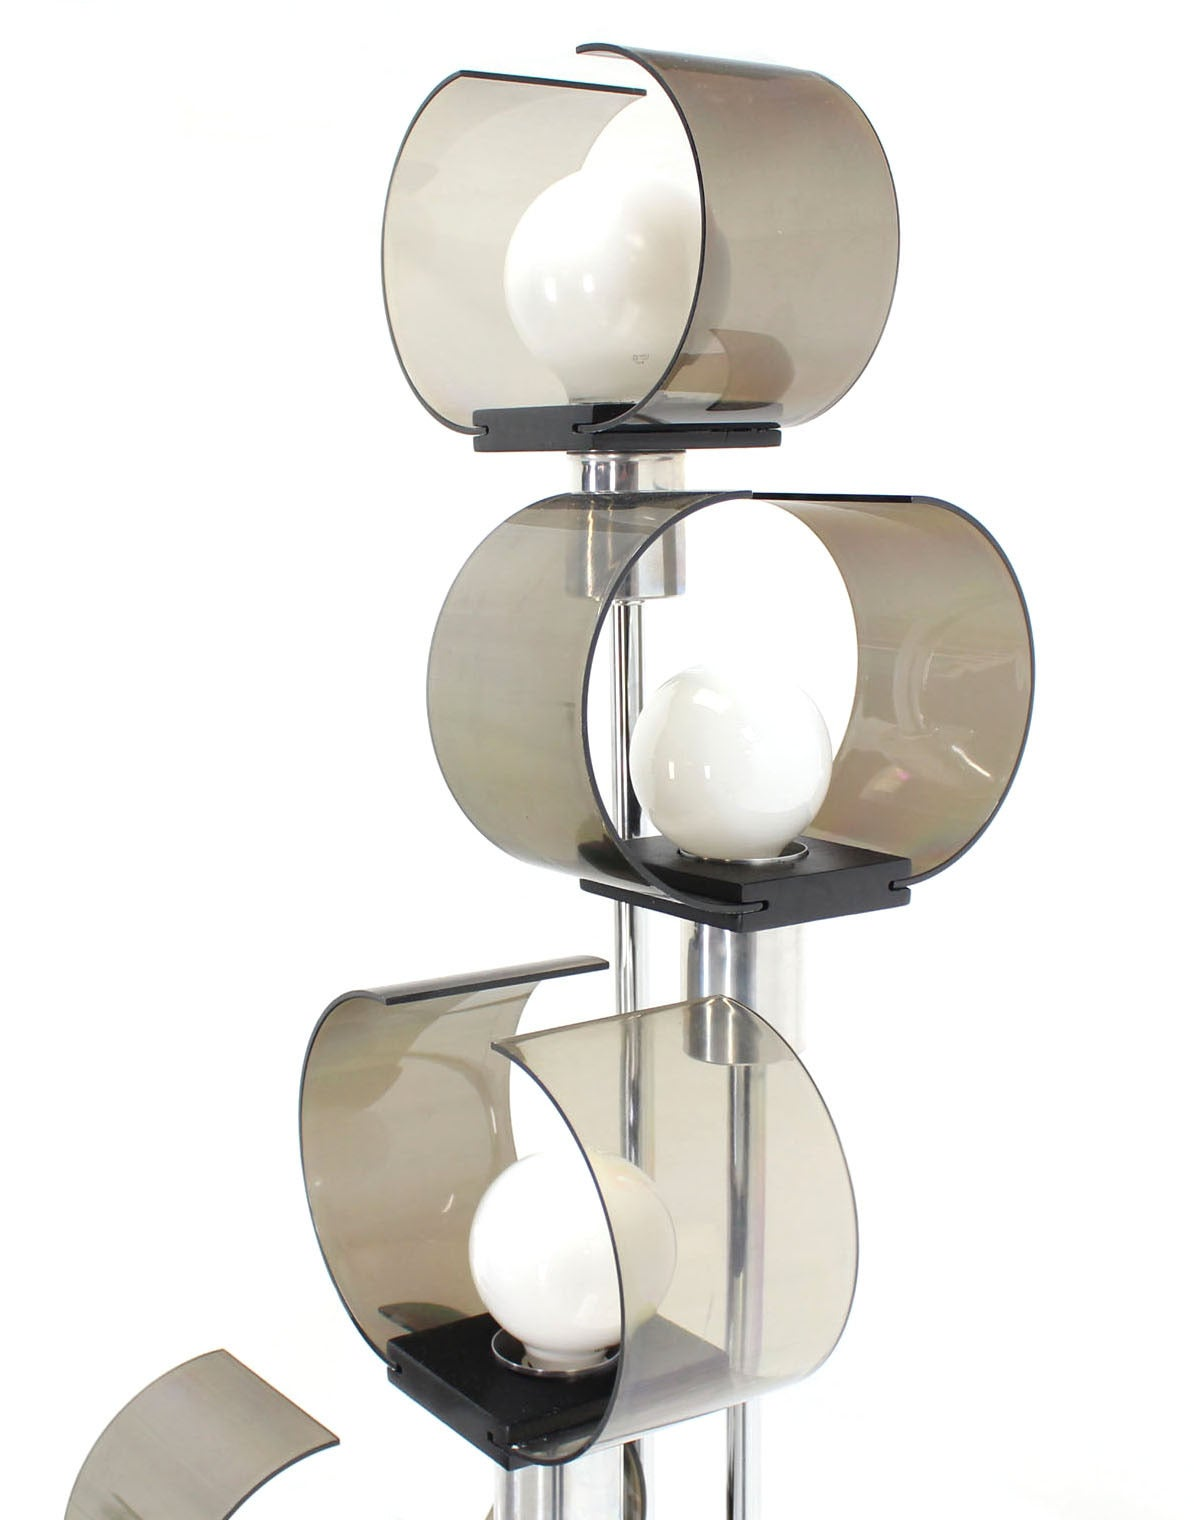 chrome and smoked lucite five light floor lamp for sale at 1stdibs. Black Bedroom Furniture Sets. Home Design Ideas